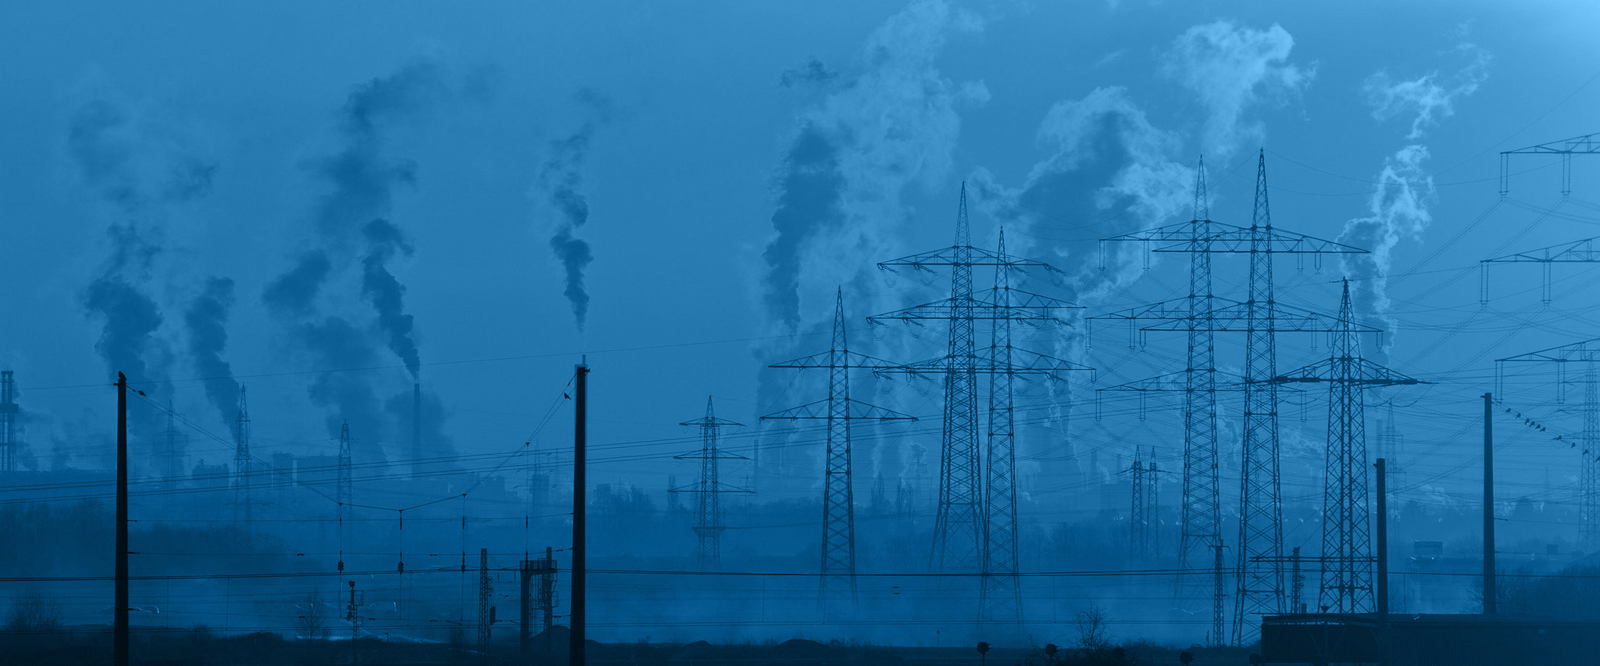 blue-pollution-cropped.jpg